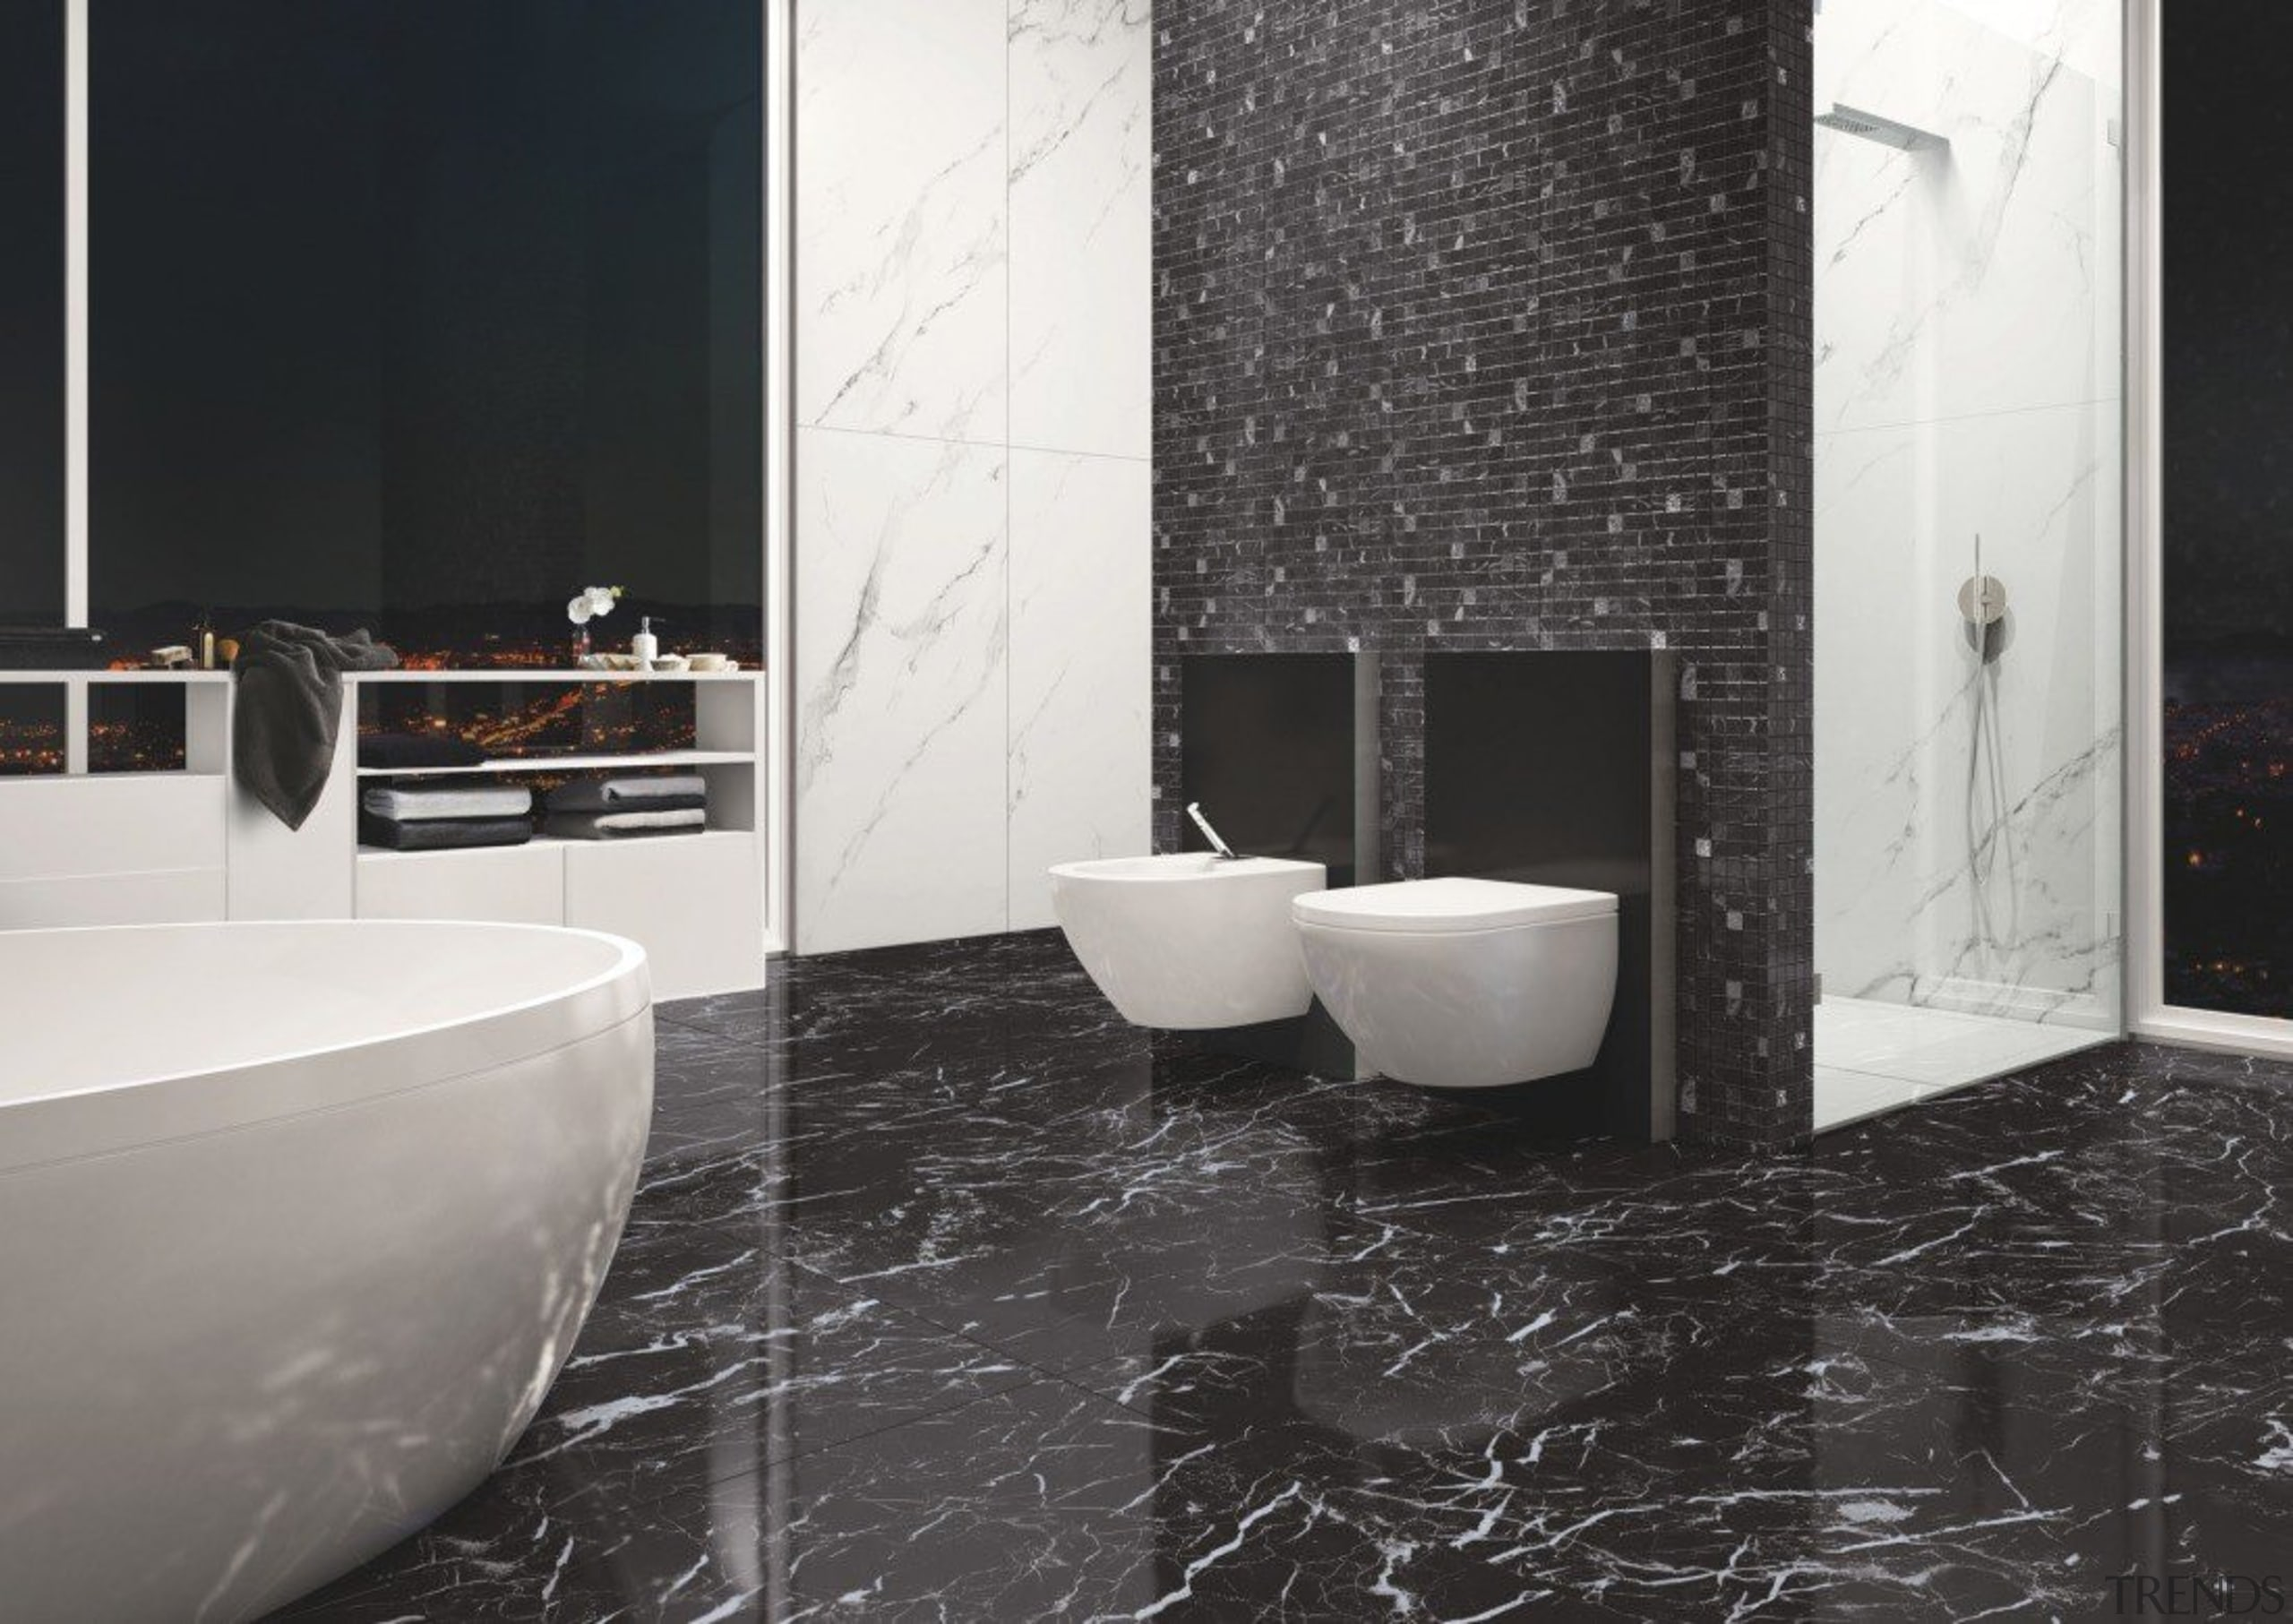 Marmoker Statuario - Marmoker Statuario - bathroom | bathroom, ceramic, floor, flooring, interior design, plumbing fixture, product design, room, tile, wall, black, white